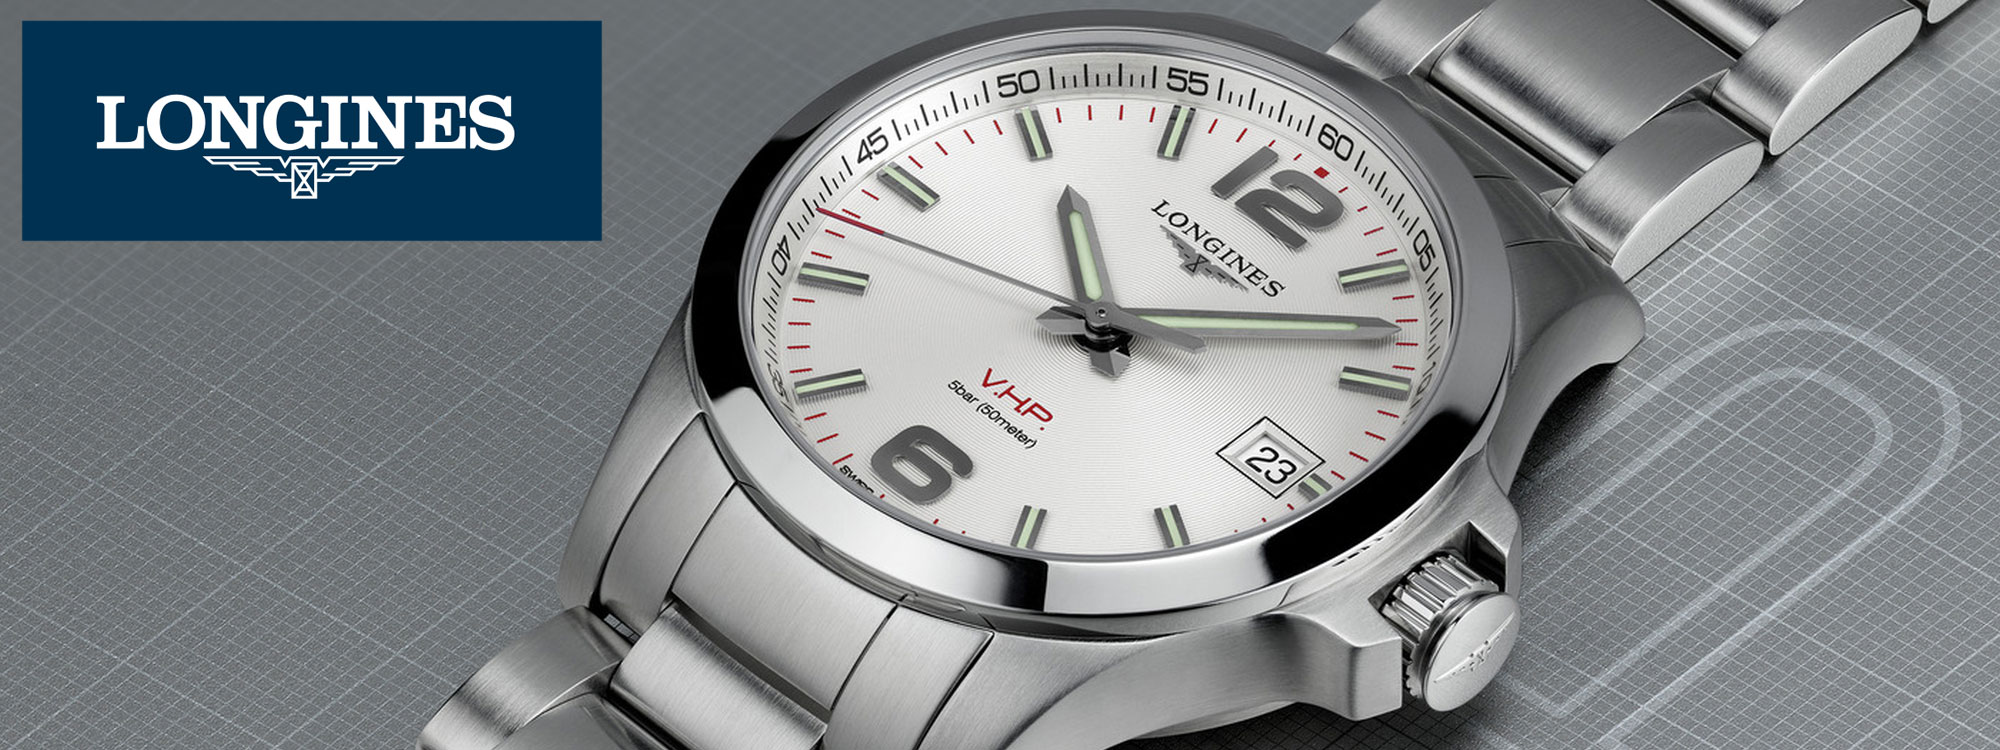 Banner Home Longines 001